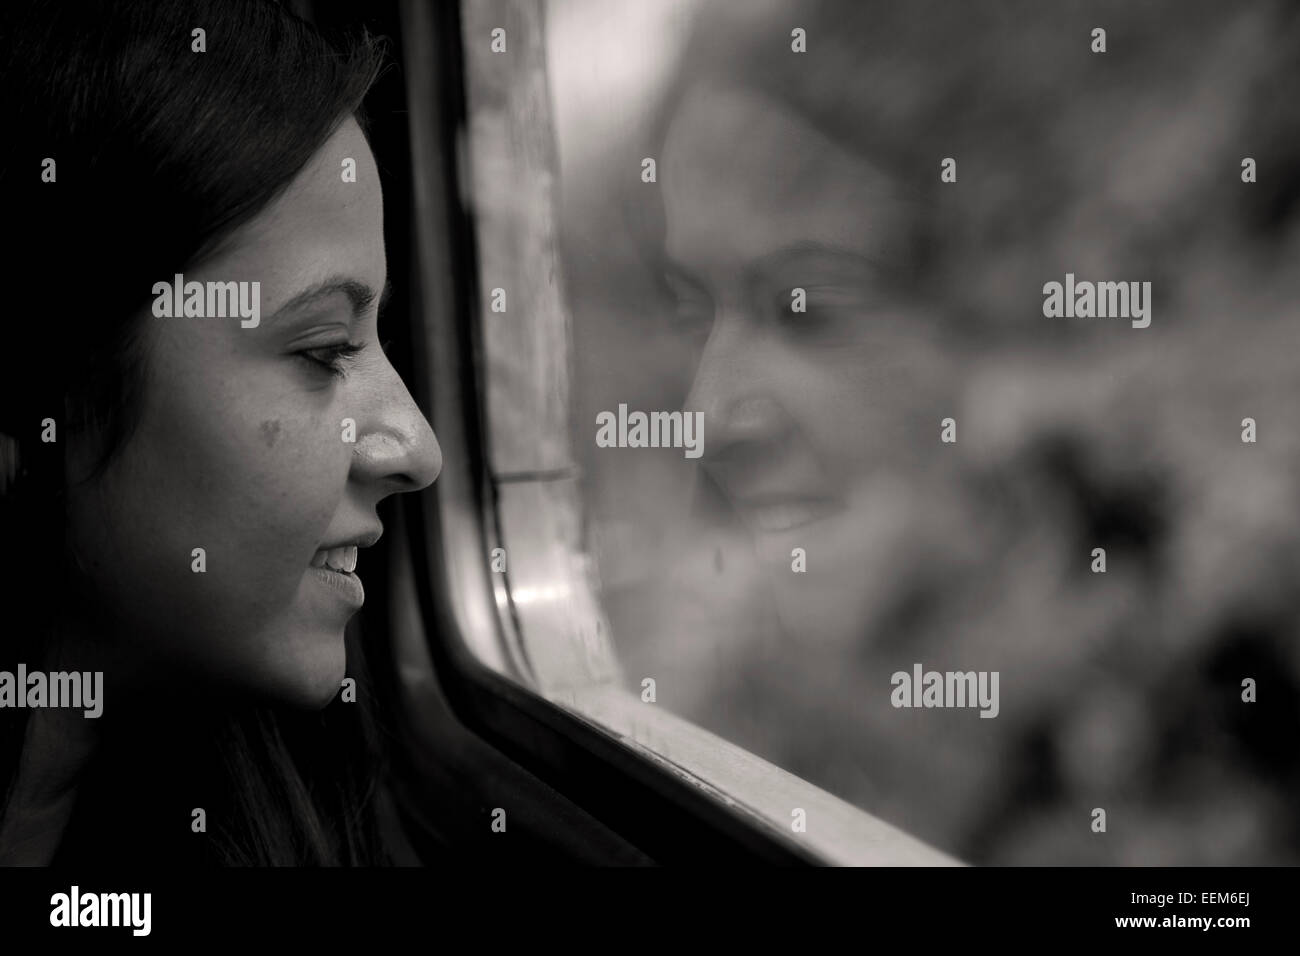 woman sitting on a train looking out of the window - Stock Image